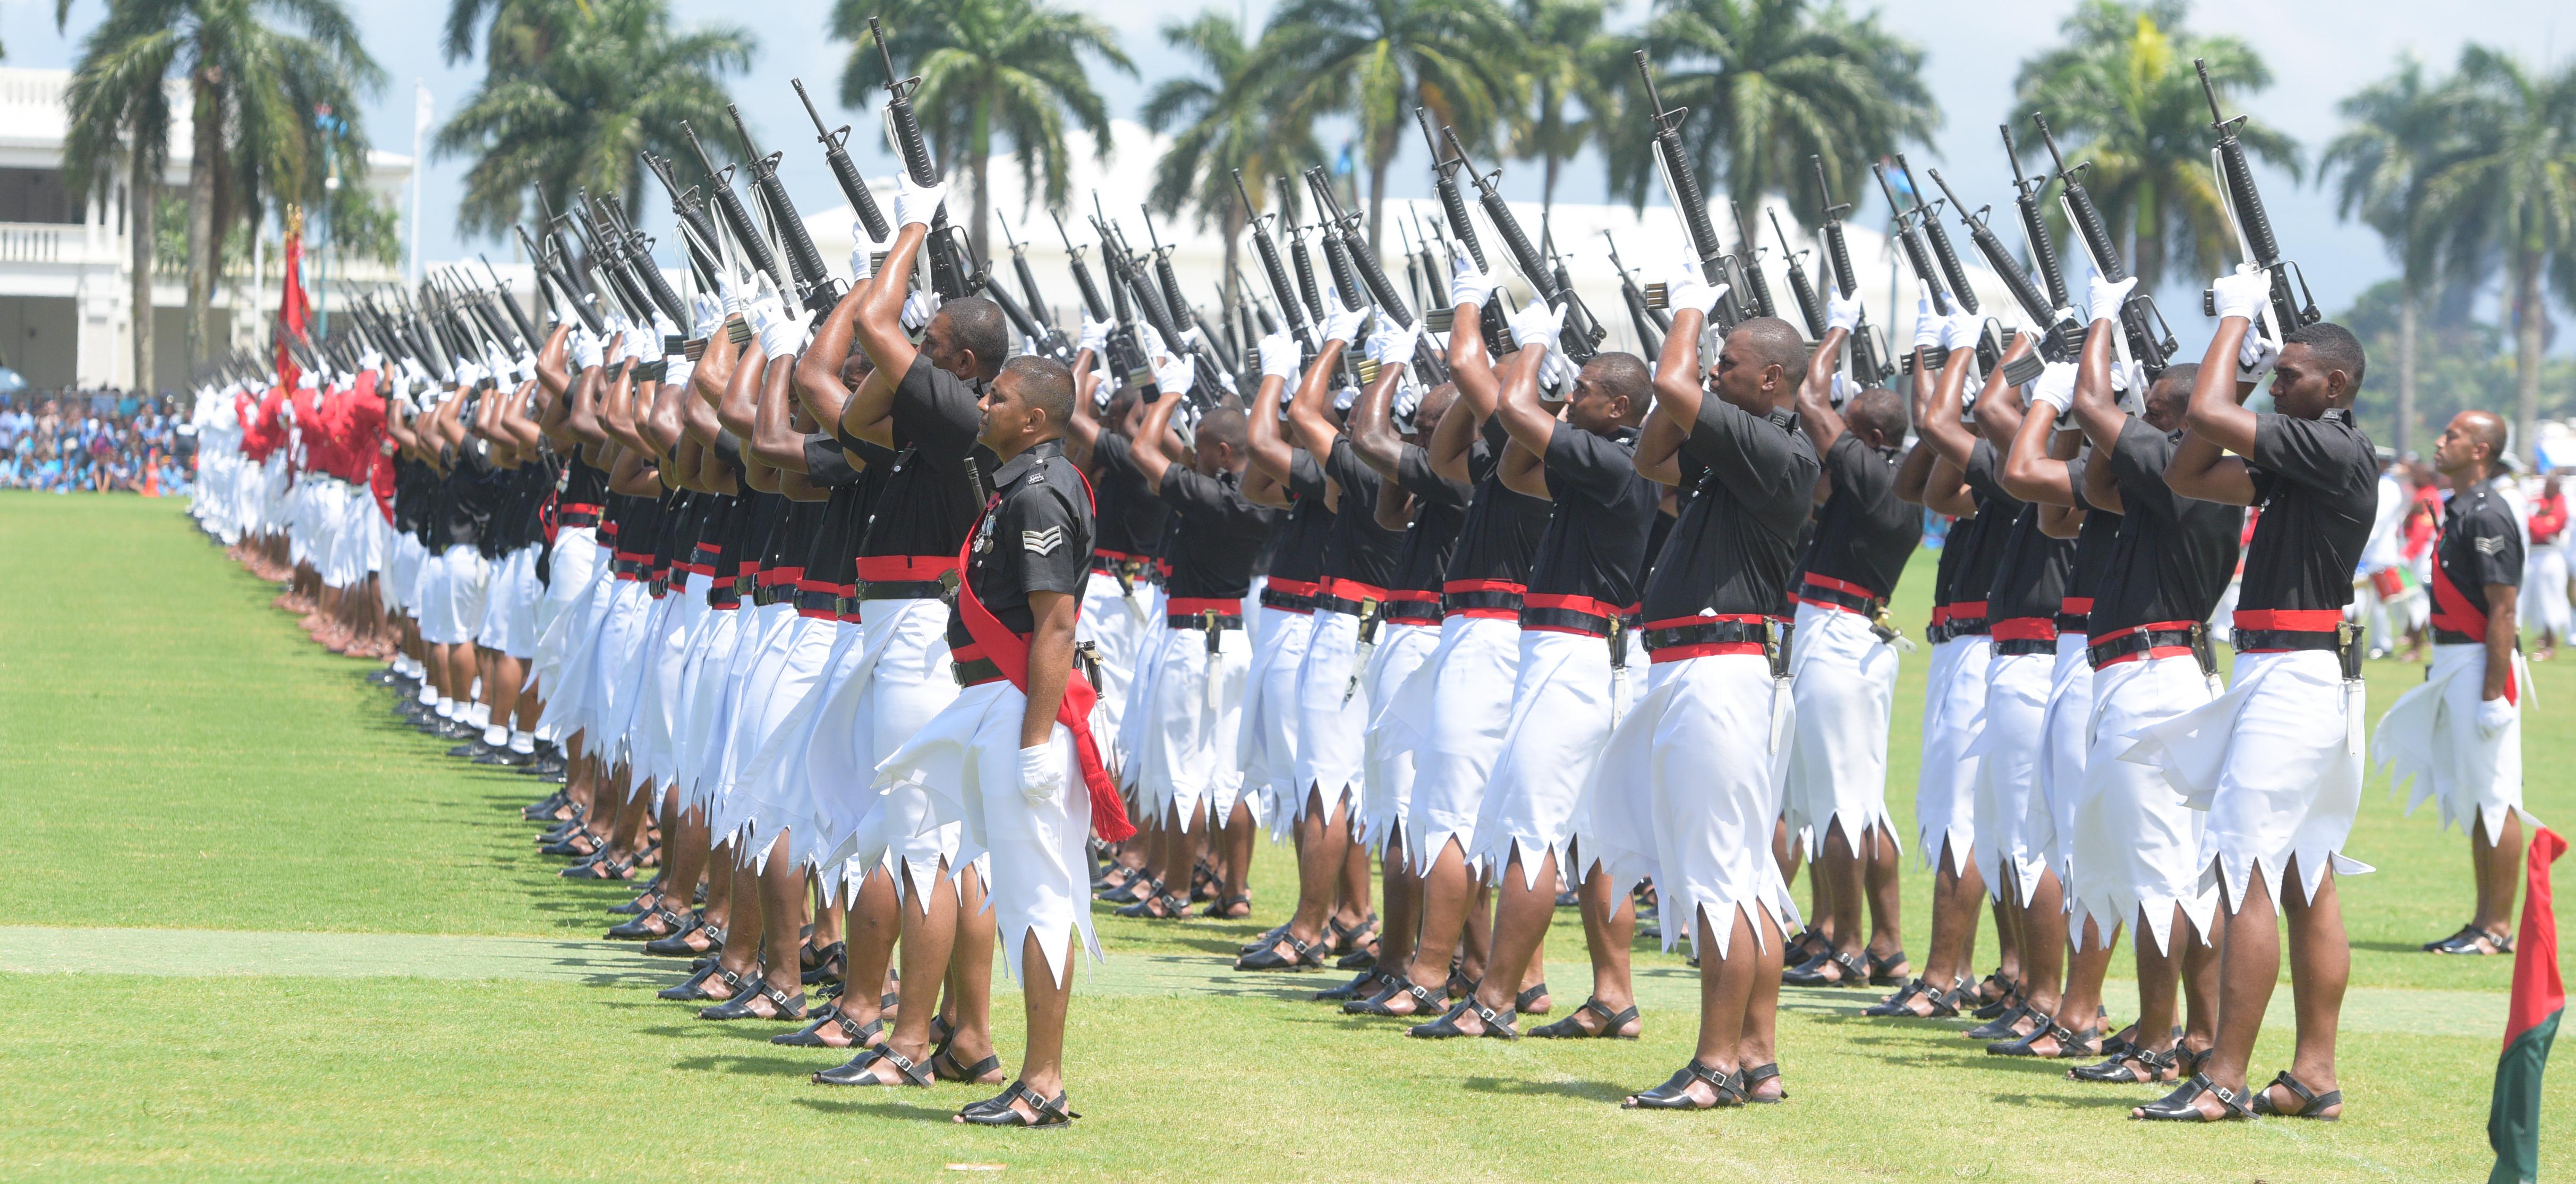 RFMF, Police and Navy personnel accorded 21 gun salutes during The 50th Independence commemorative Fiji Day Parade at Albert Park on October 7, 2020. Photo: Ronald Kumar.